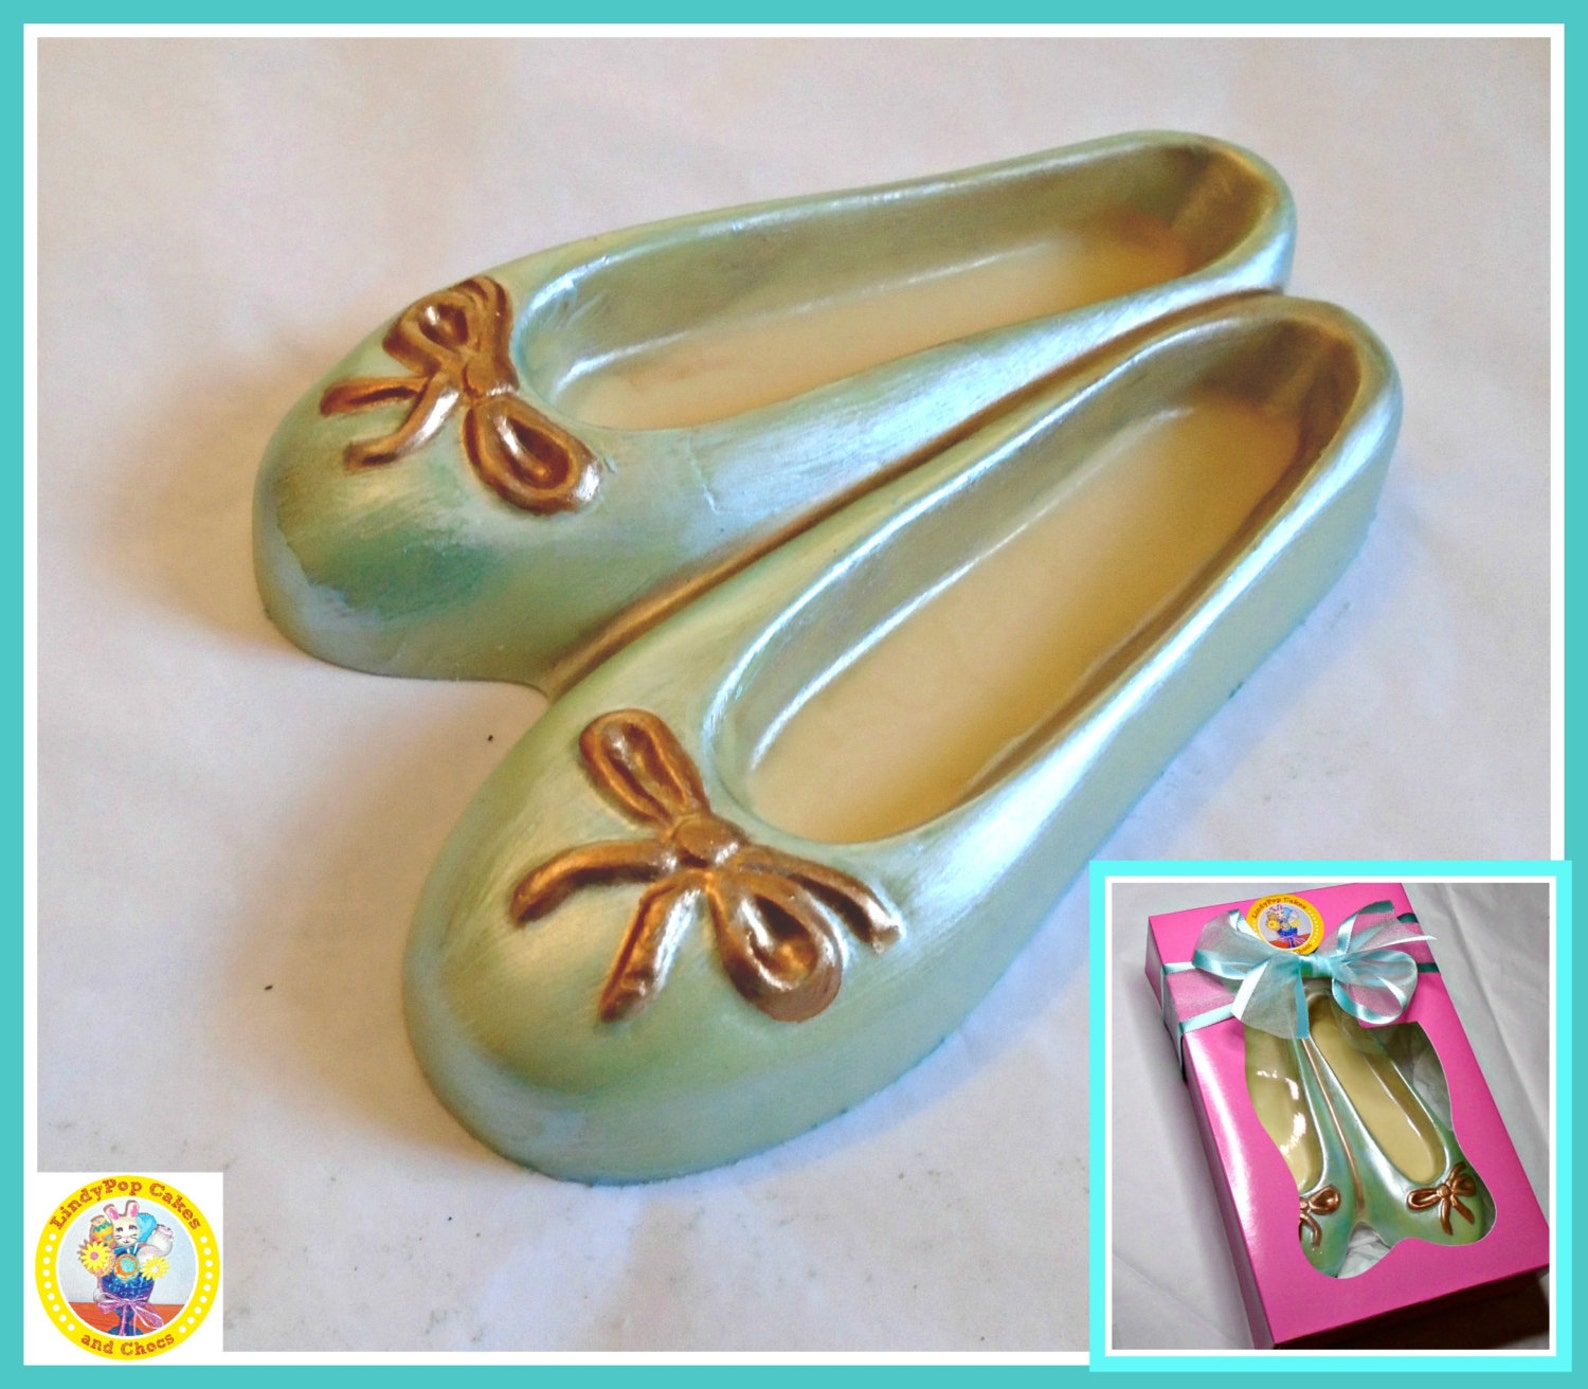 chocolate shoes/ballet pumps/edible shoes/ballet gift/female gift/girls birthday/flat shoes/ballet shoes/sister/mum/edible gift/